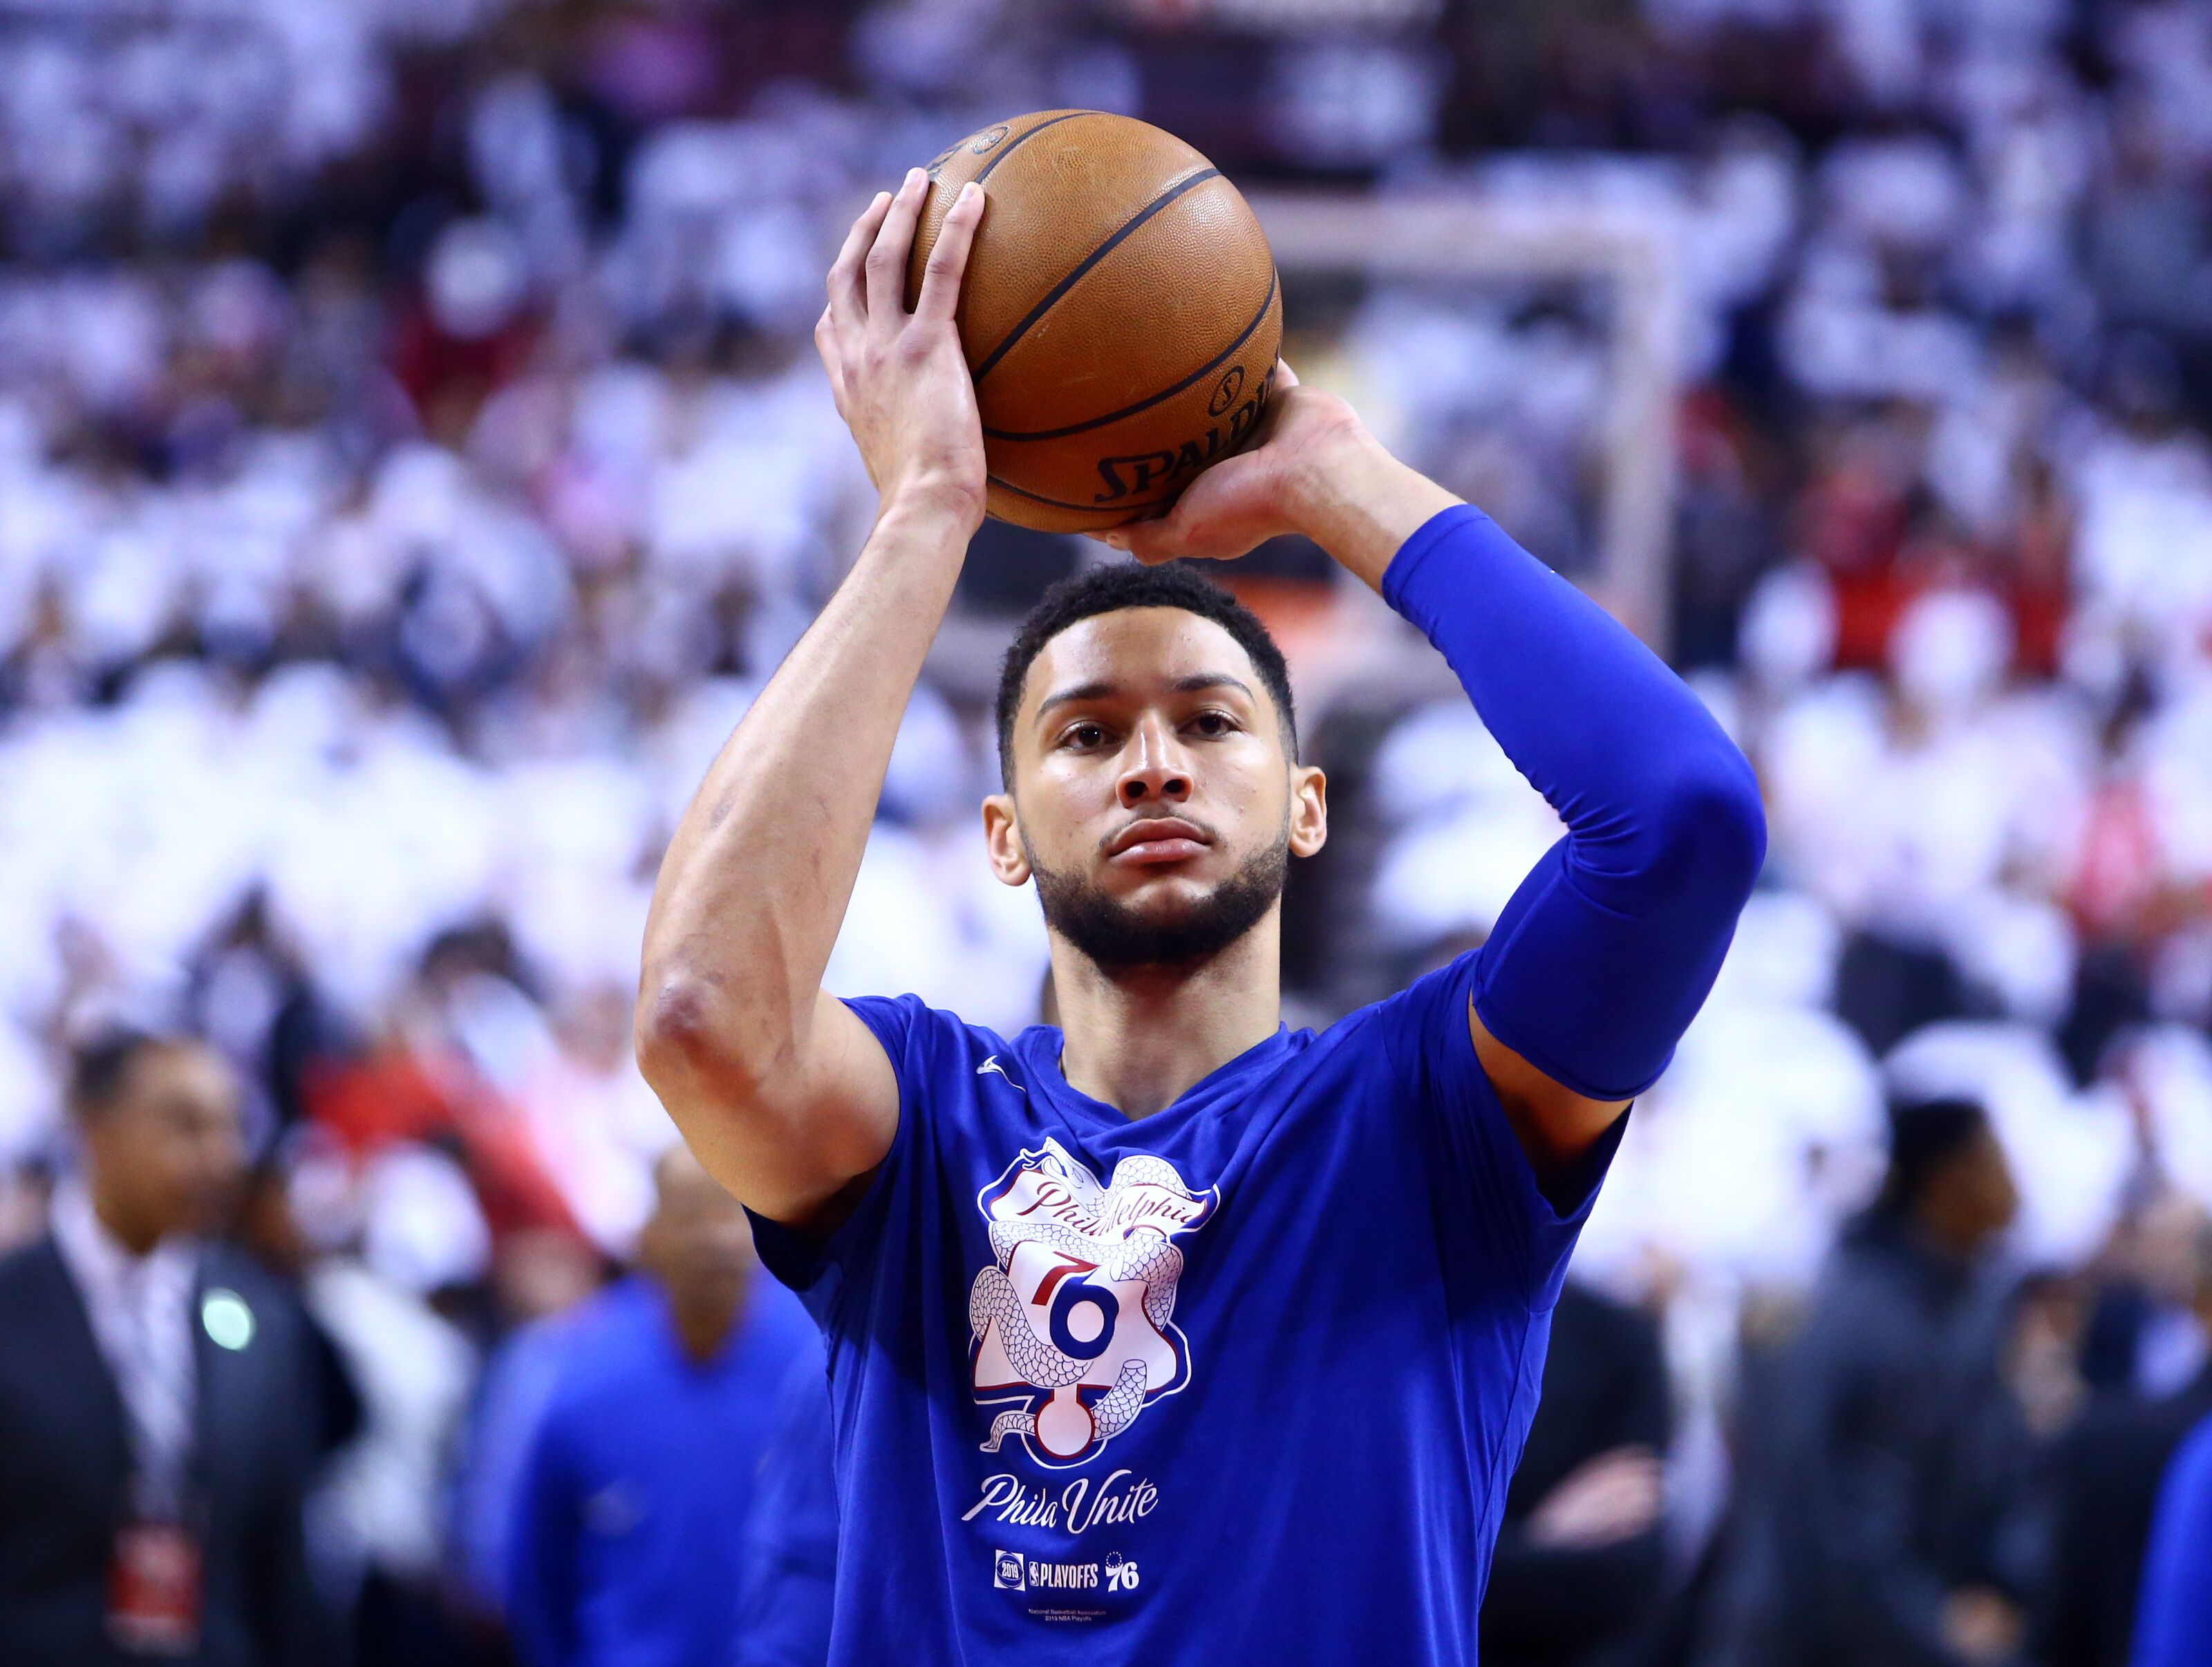 reputable site e94d3 7d7eb Philadelphia 76ers: Ben Simmons plans to join Australian ...